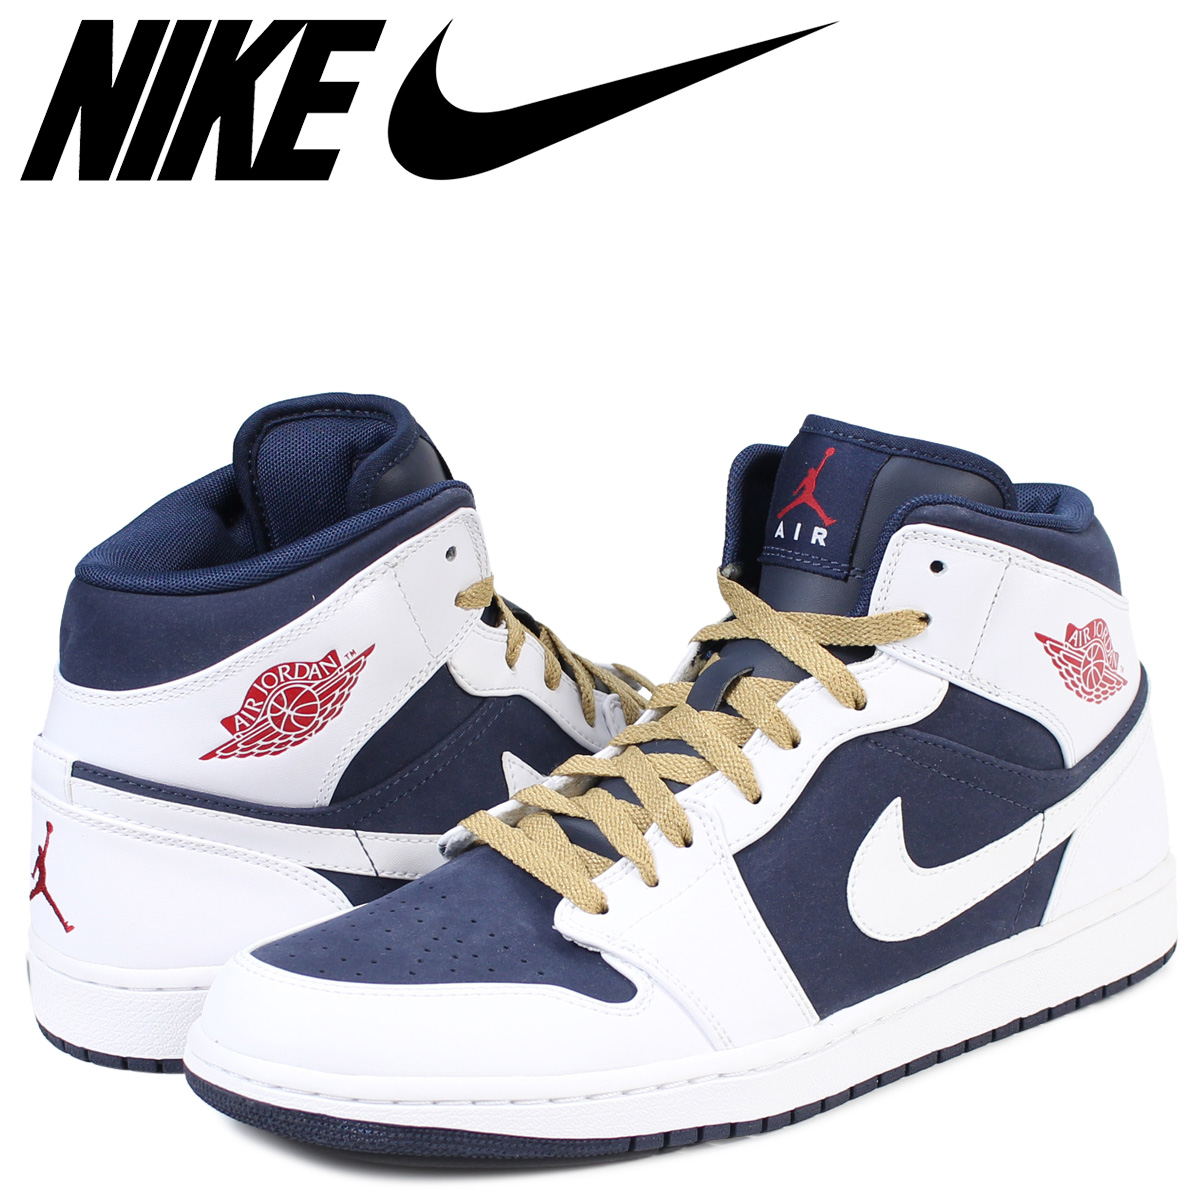 NIKE AIR JORDAN 1 PHAT Nike Air Jordan 1 fat sneakers men shoes white  1711  9501e3b0e